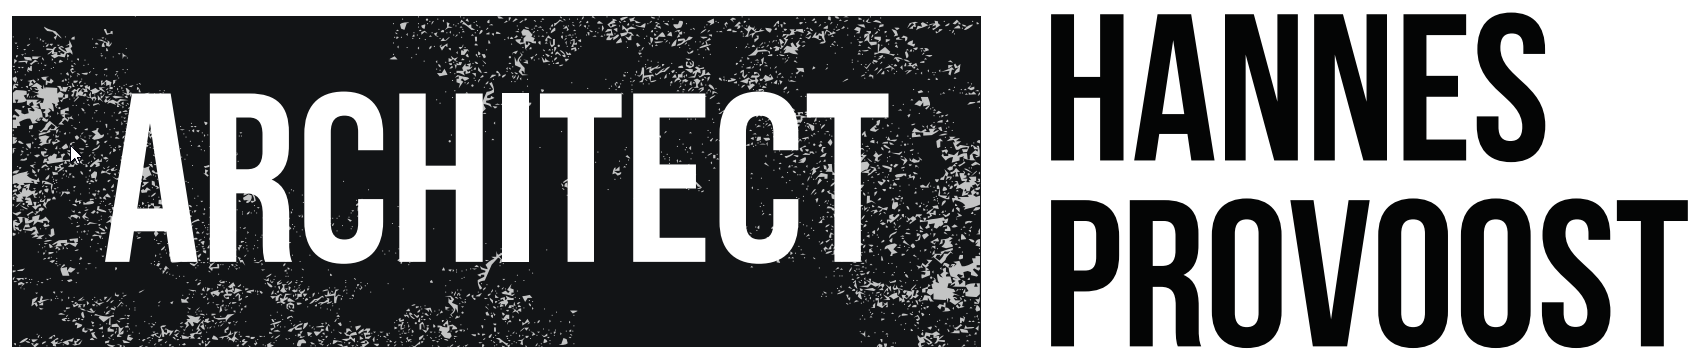 Logo Architect Hannes Provoost